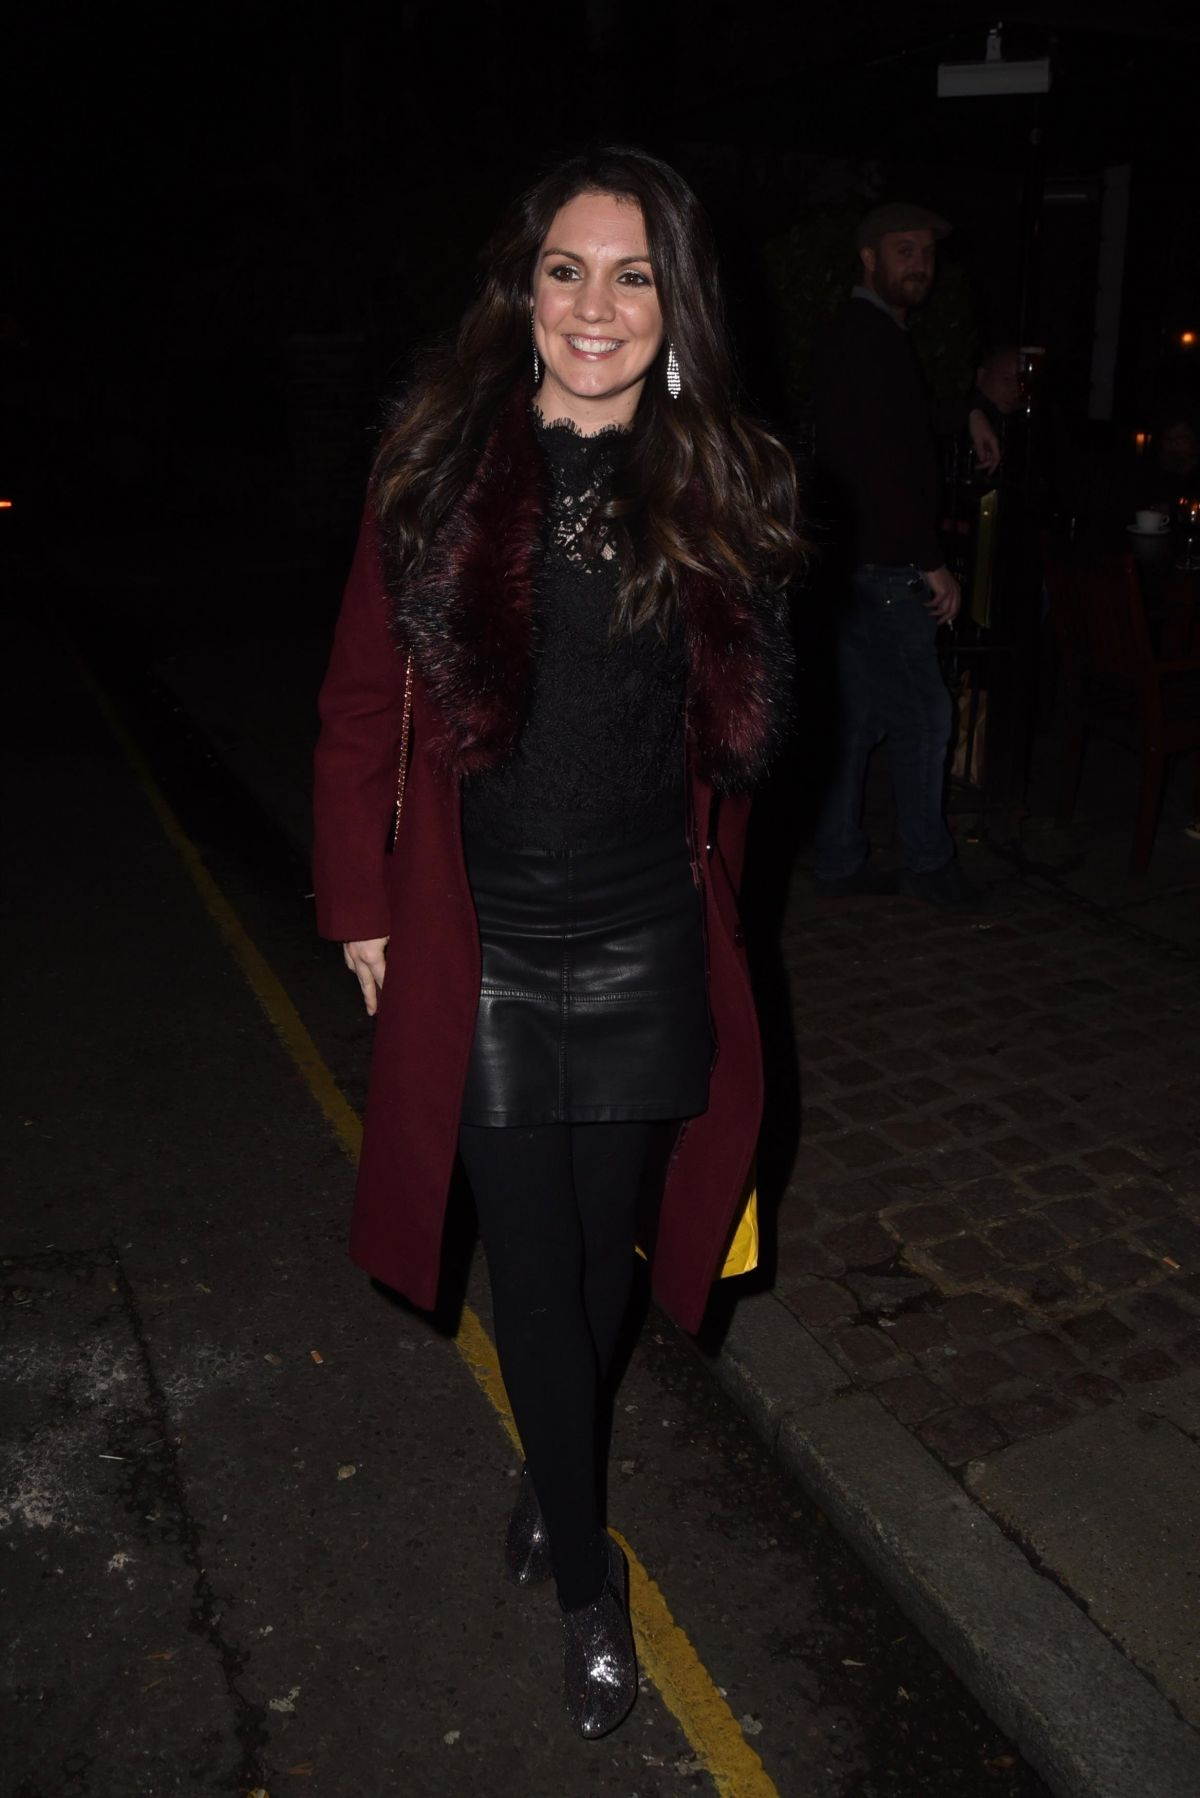 laura tobin - photo #7